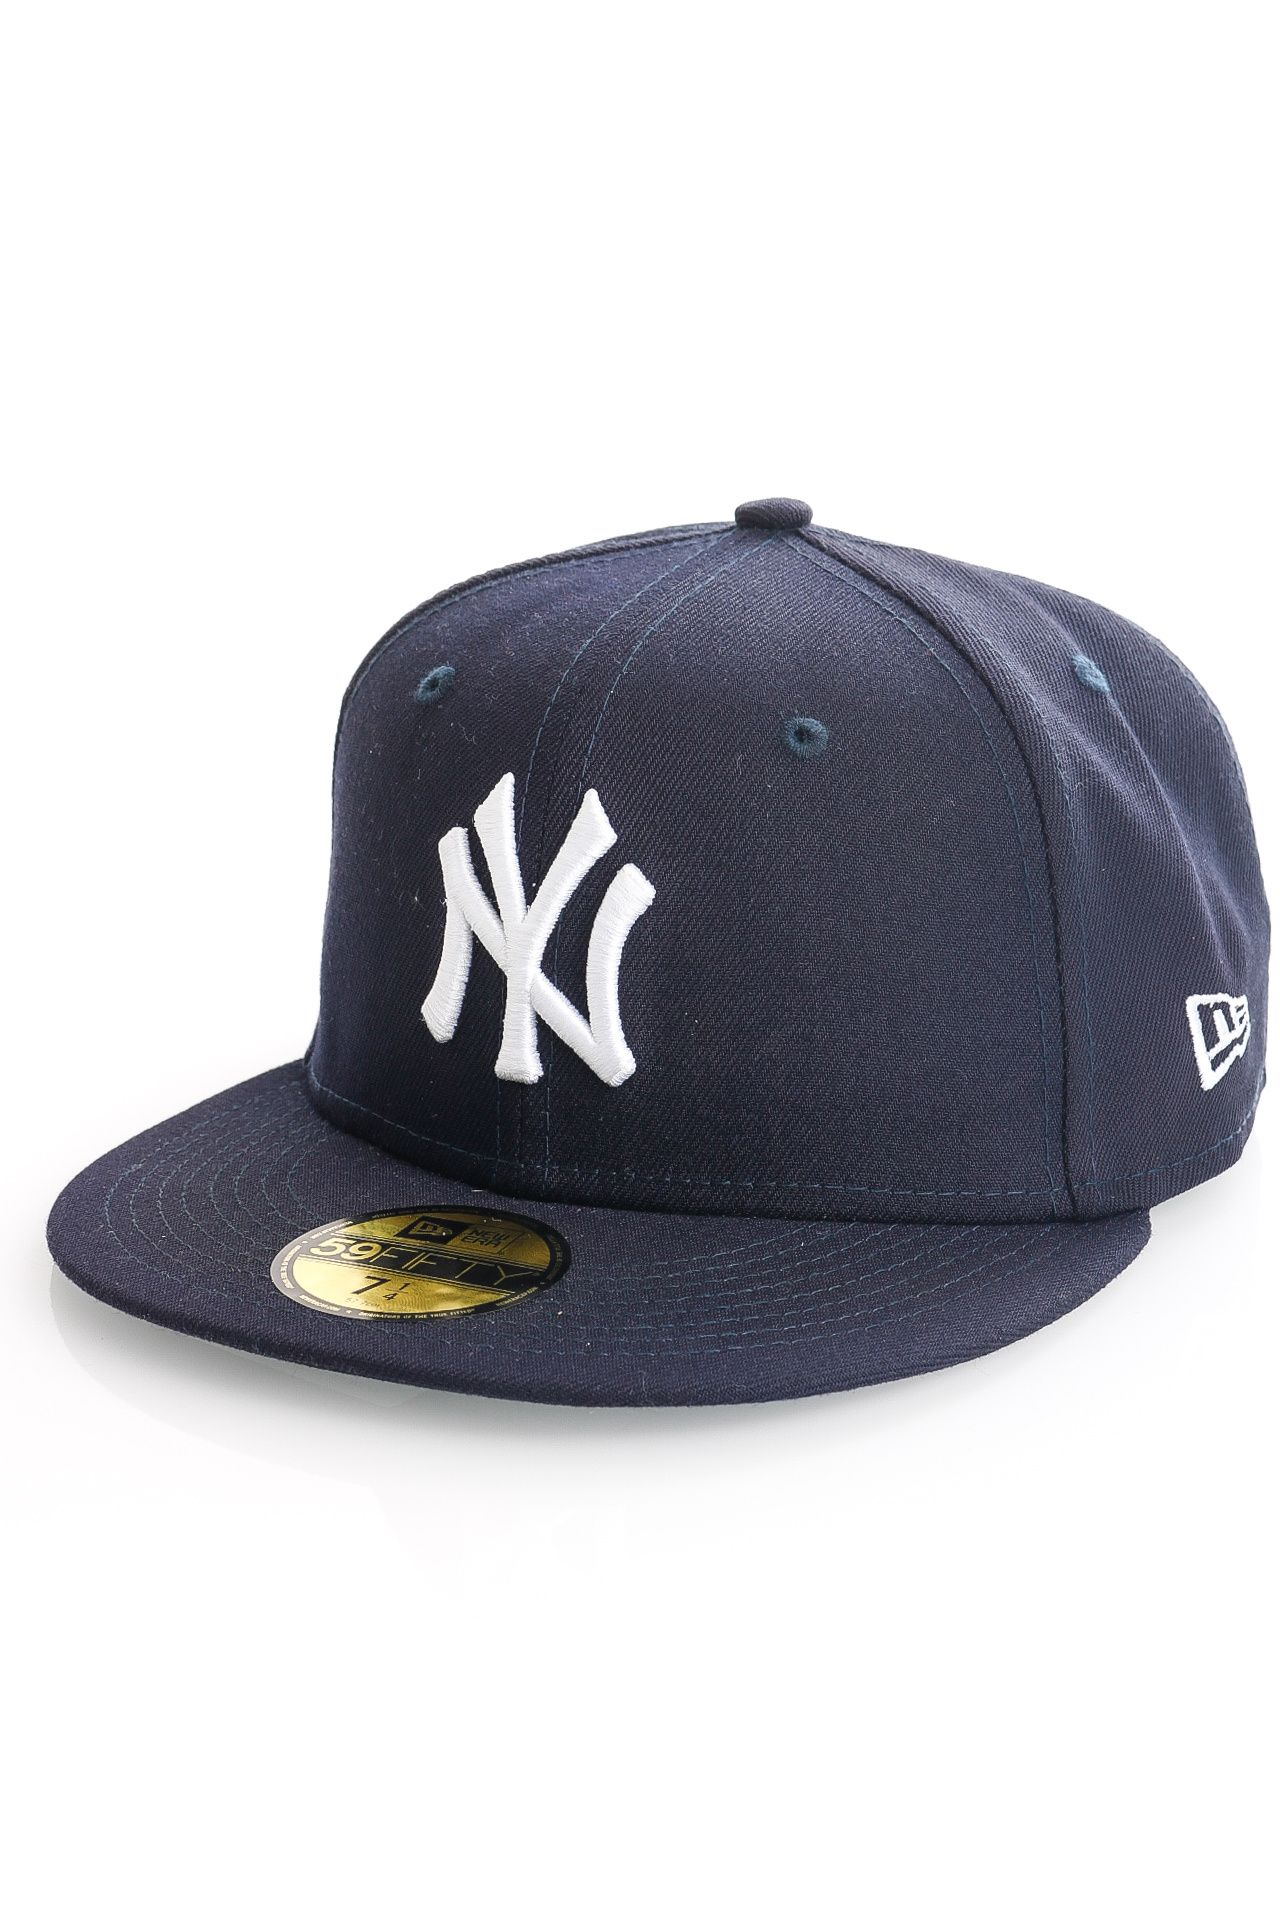 Afbeelding van New Era New York Yankees Fitted Cap MLB AC PERF 59FIFTY Navy/White 12572841